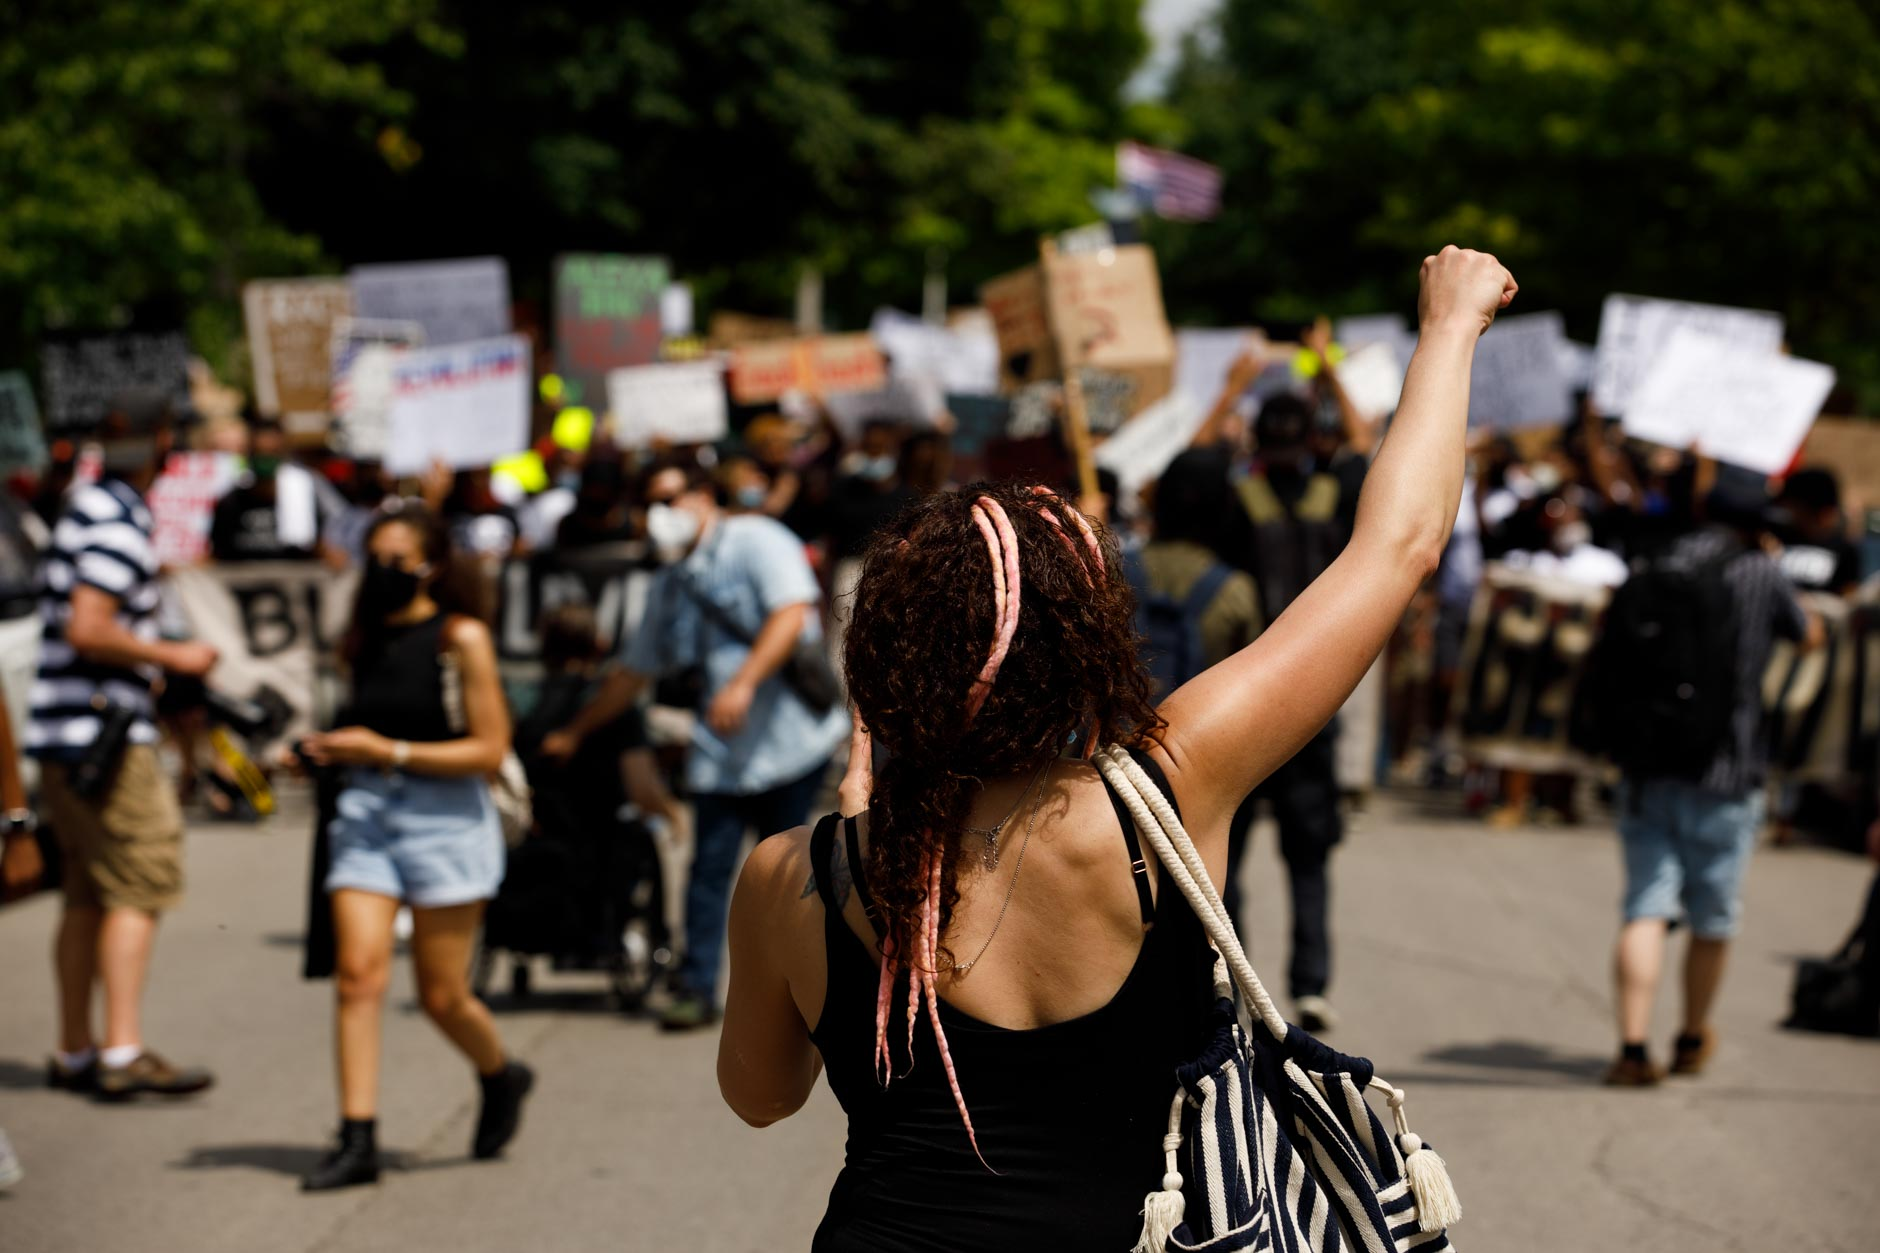 A woman raises her fist in solidarity with Black Lives Matter protestors as a group of hundreds march from Dunn Meadow at Indiana University Bloomington to the Monroe County Courthouse square on Friday, June 5, 2020. (James Brosher/Indiana University)